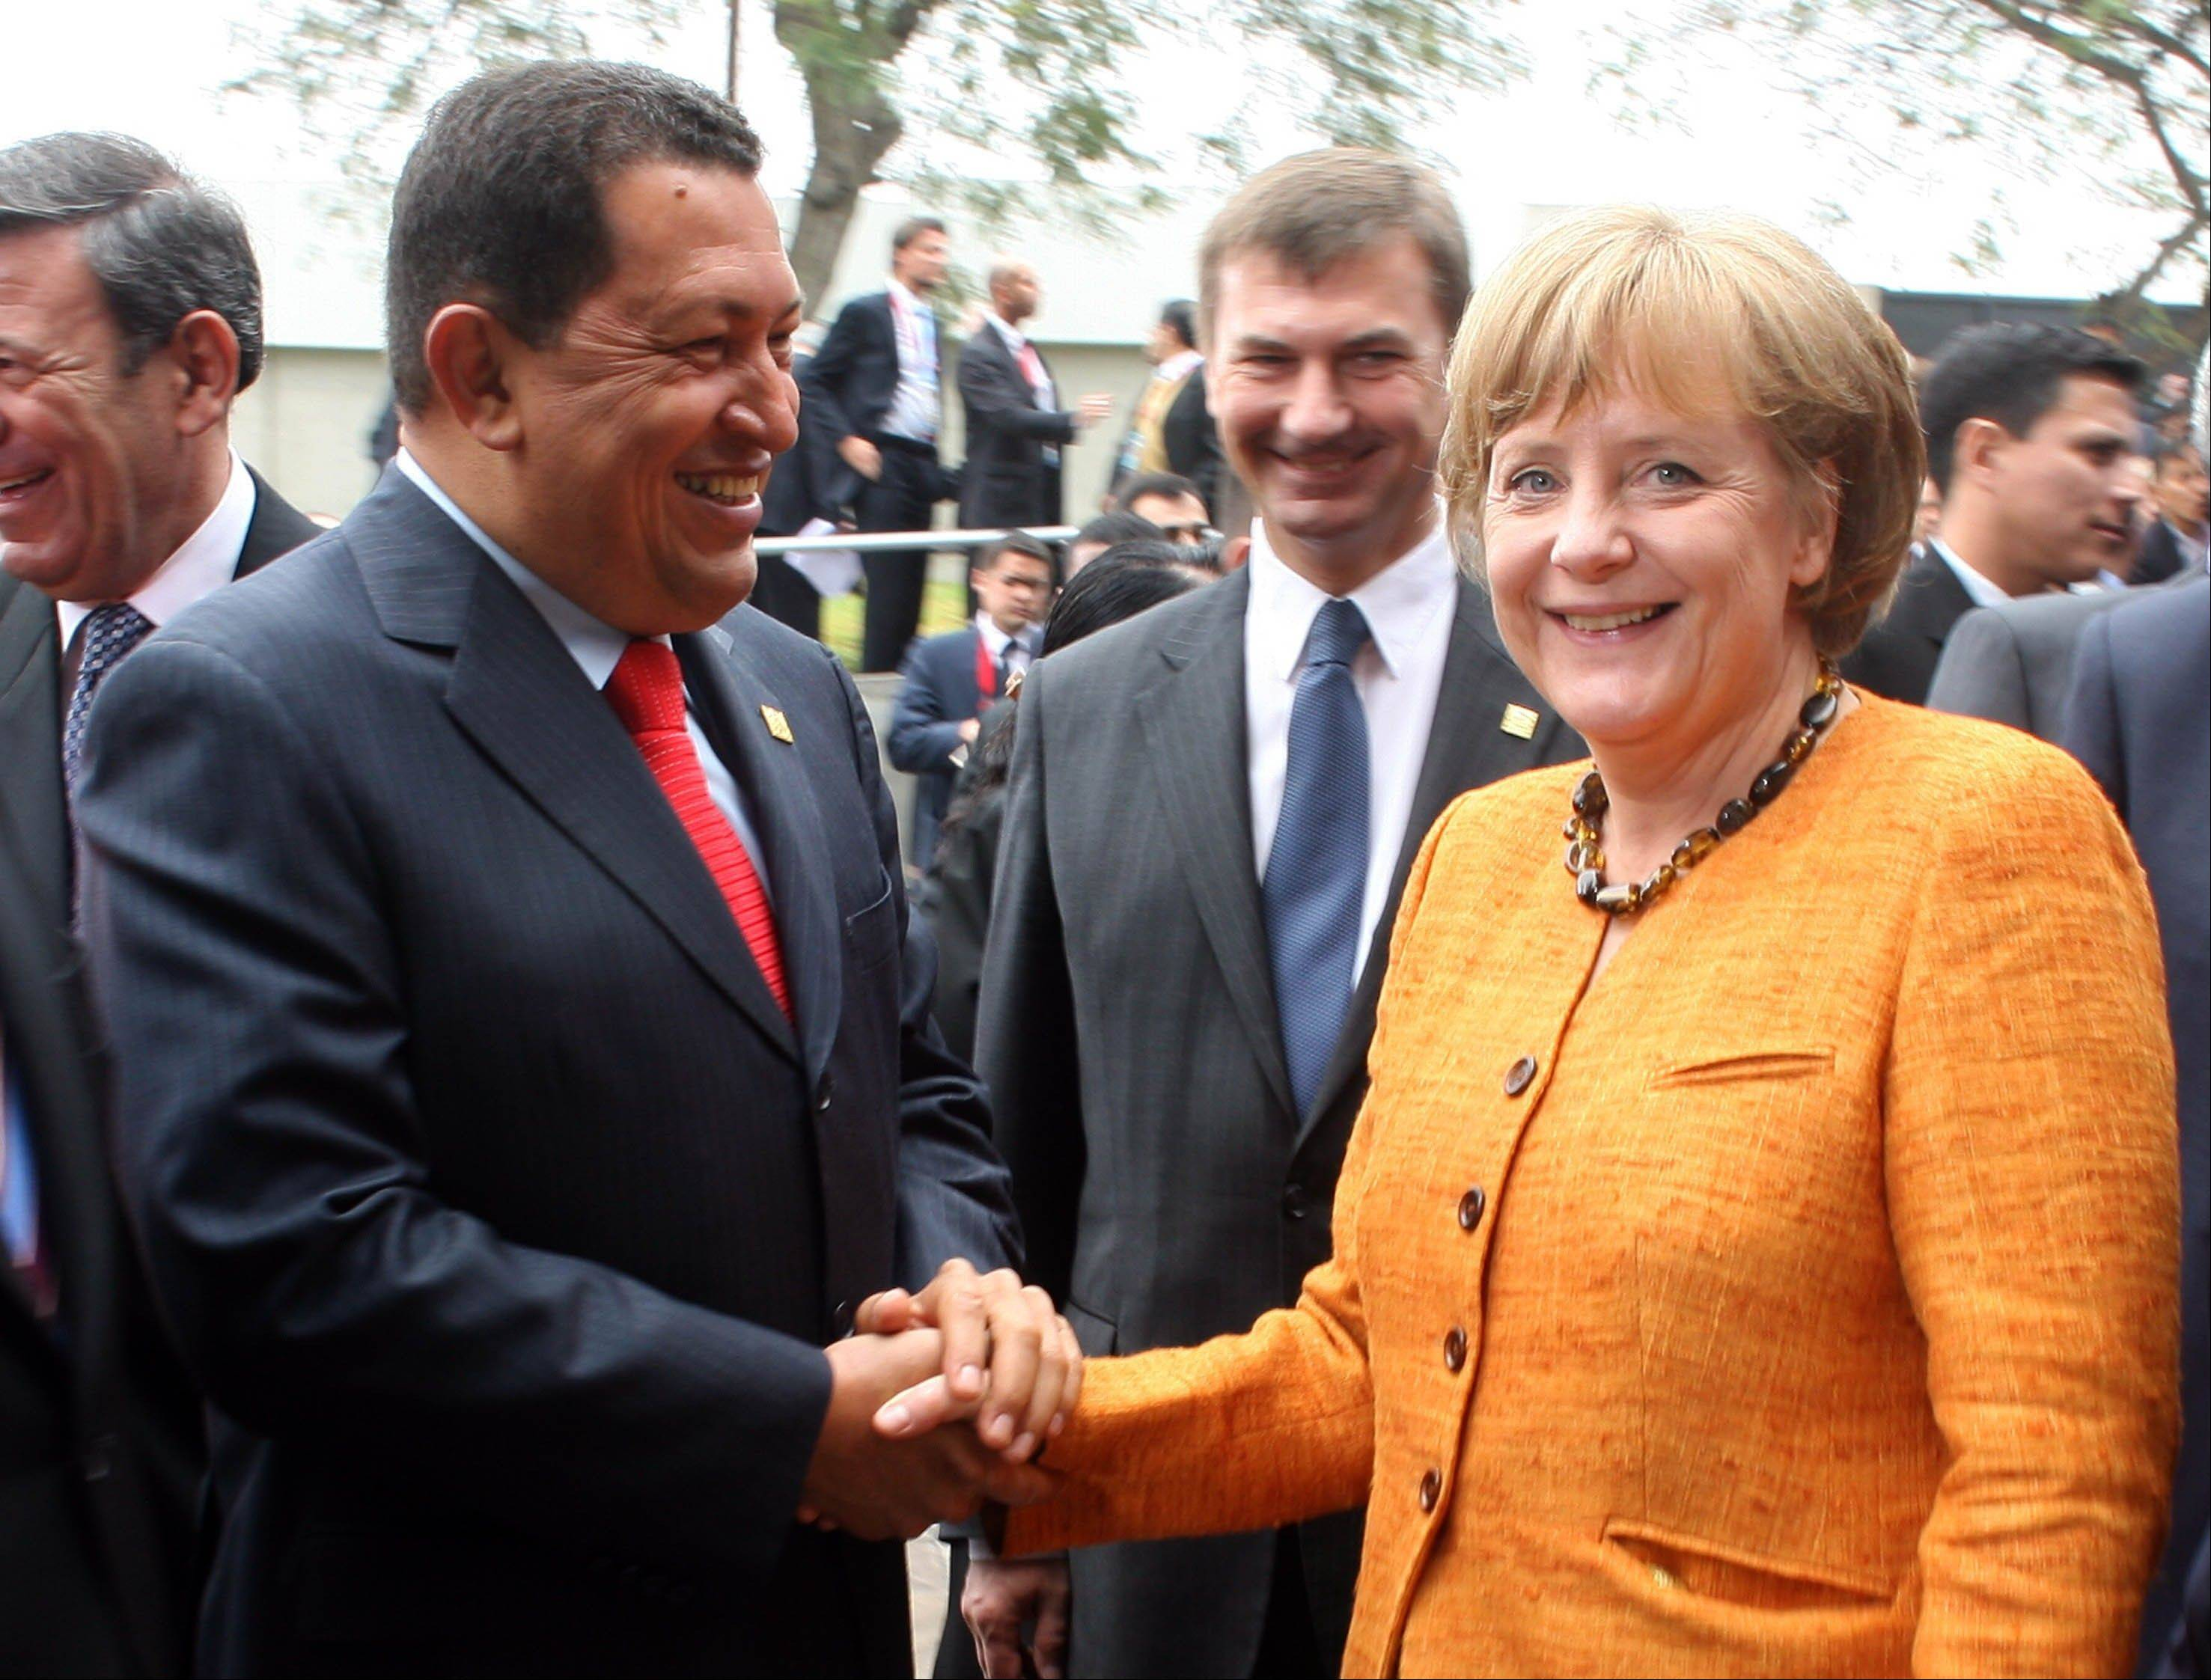 In this May 16, 2008 file photo released by Miraflores Press Office, Venezuela's President Hugo Chavez shakes hands with Germany's Chancellor Angela Merkel before the opening session of the Fifth Latin America and European Summit in Lima.